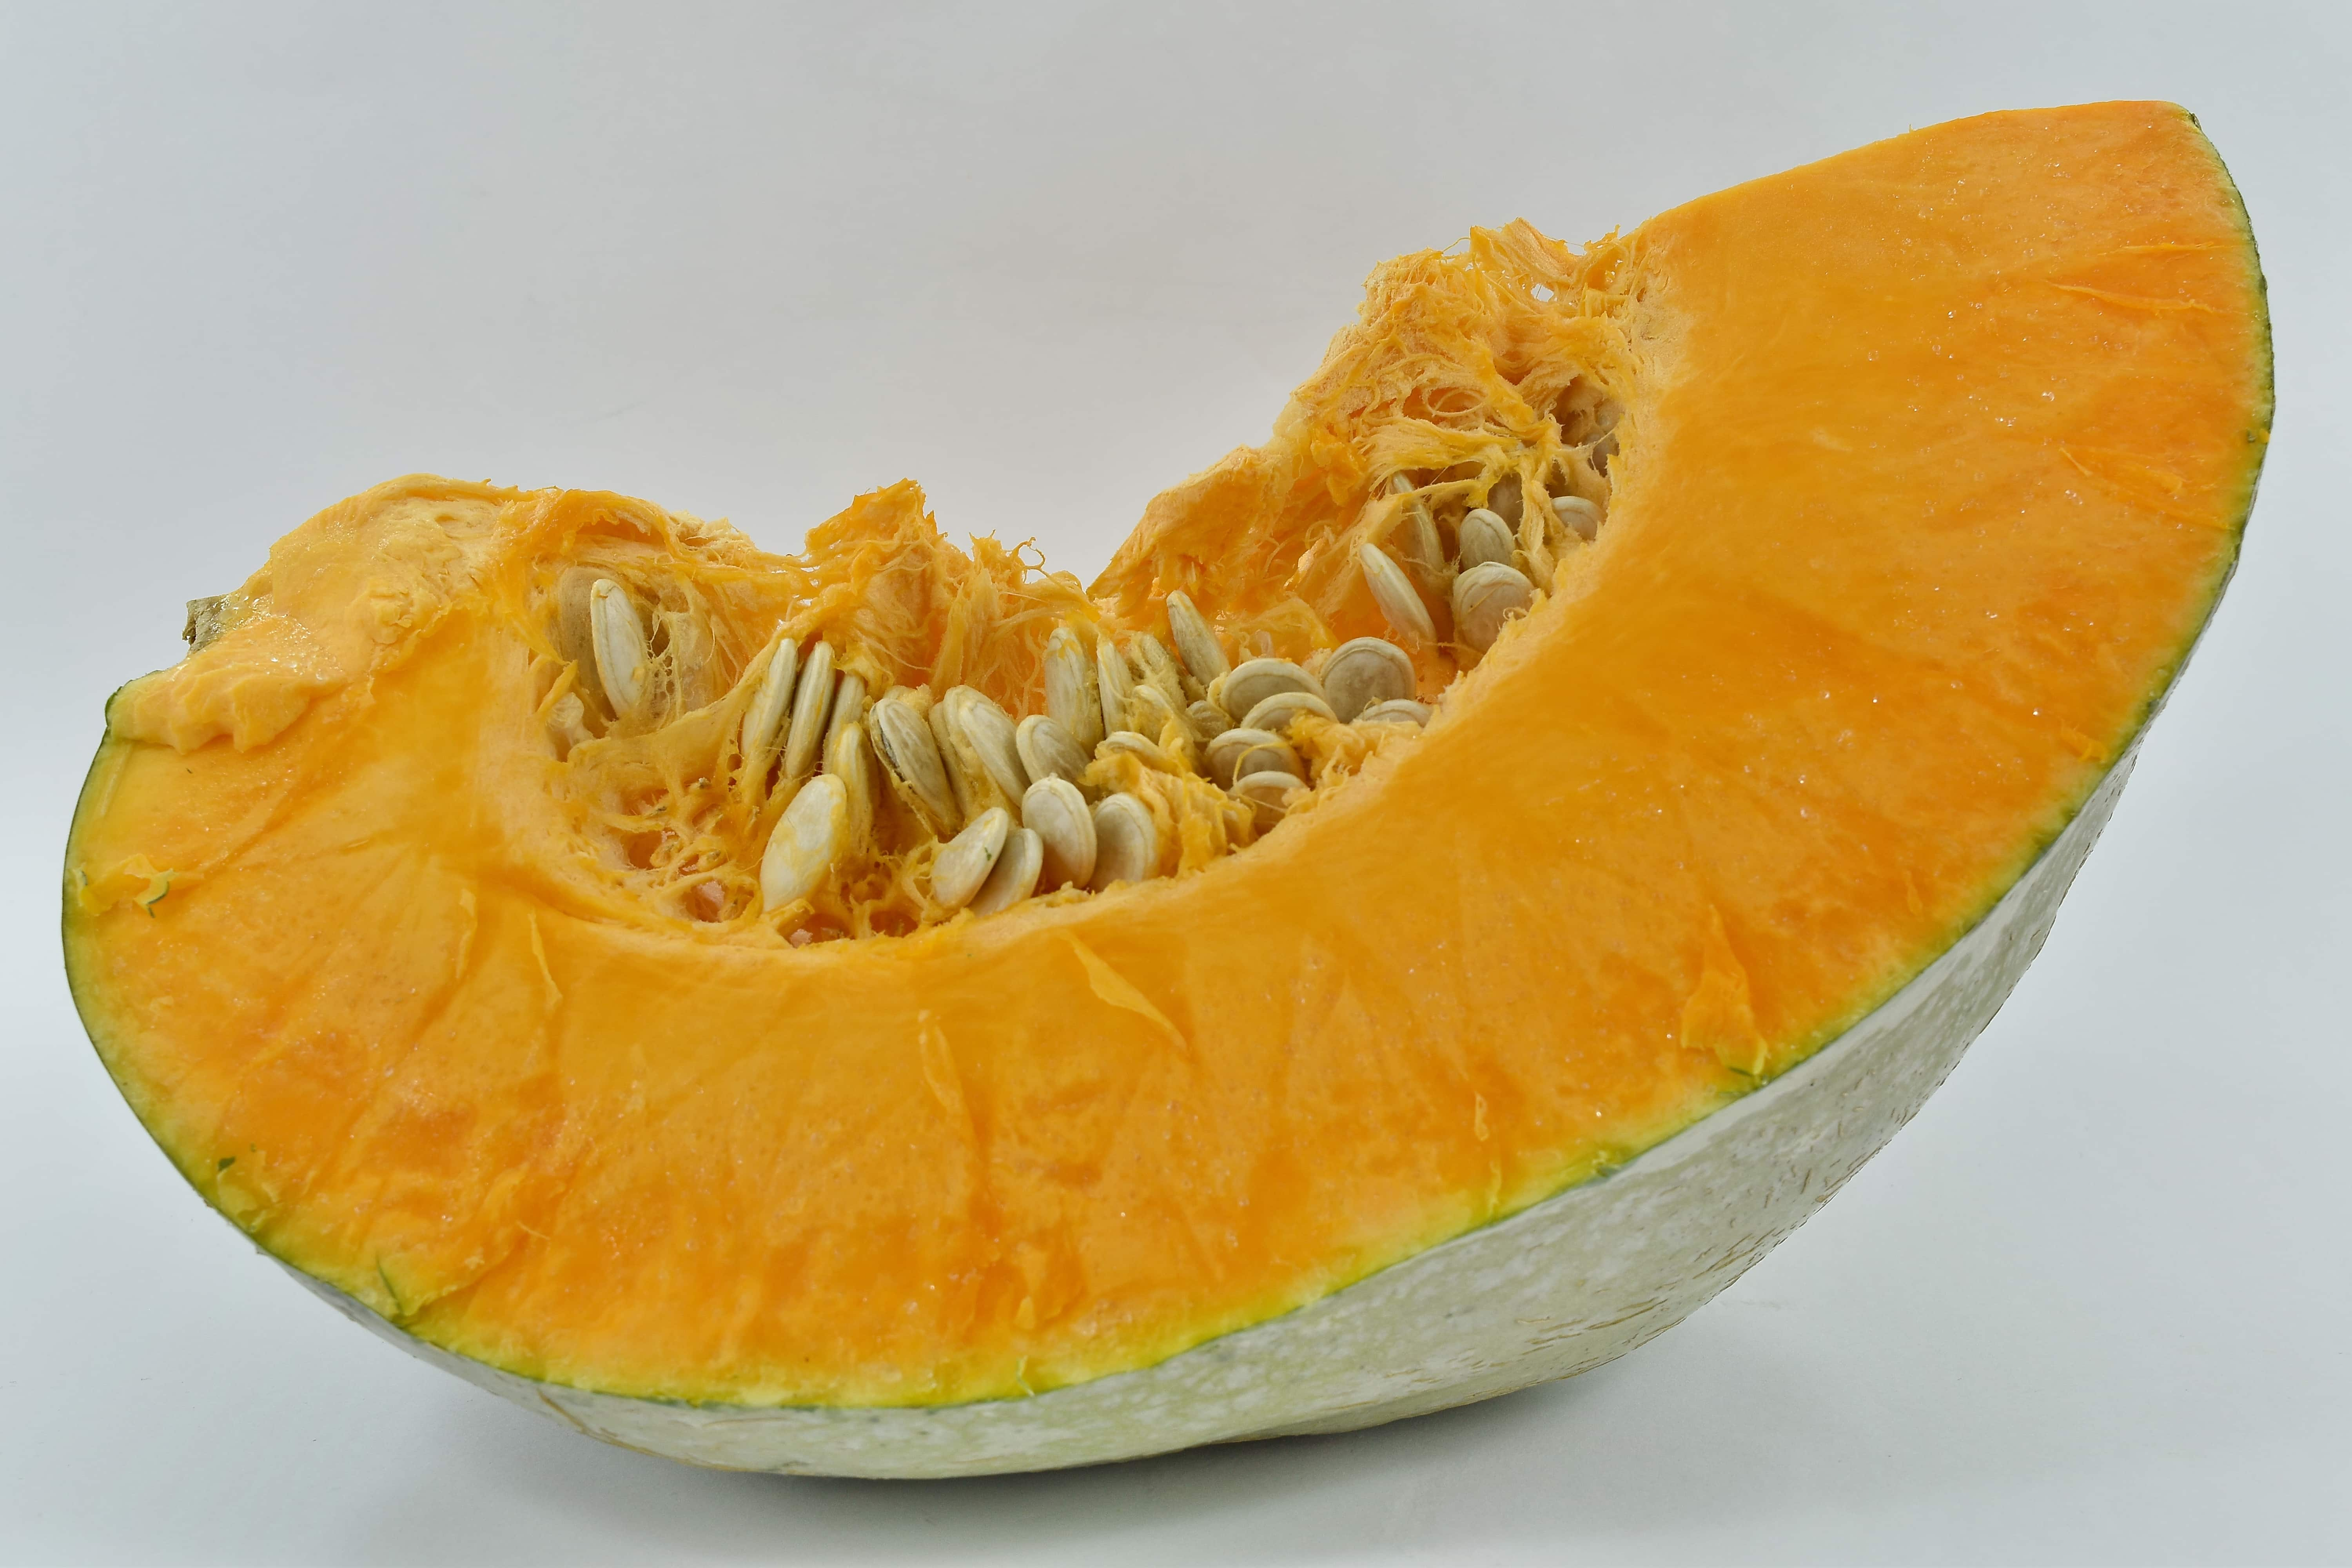 Free Picture Pumpkin Pumpkin Seed Food Vegetable Fresh Healthy Squash Nutrition Delicious Slice